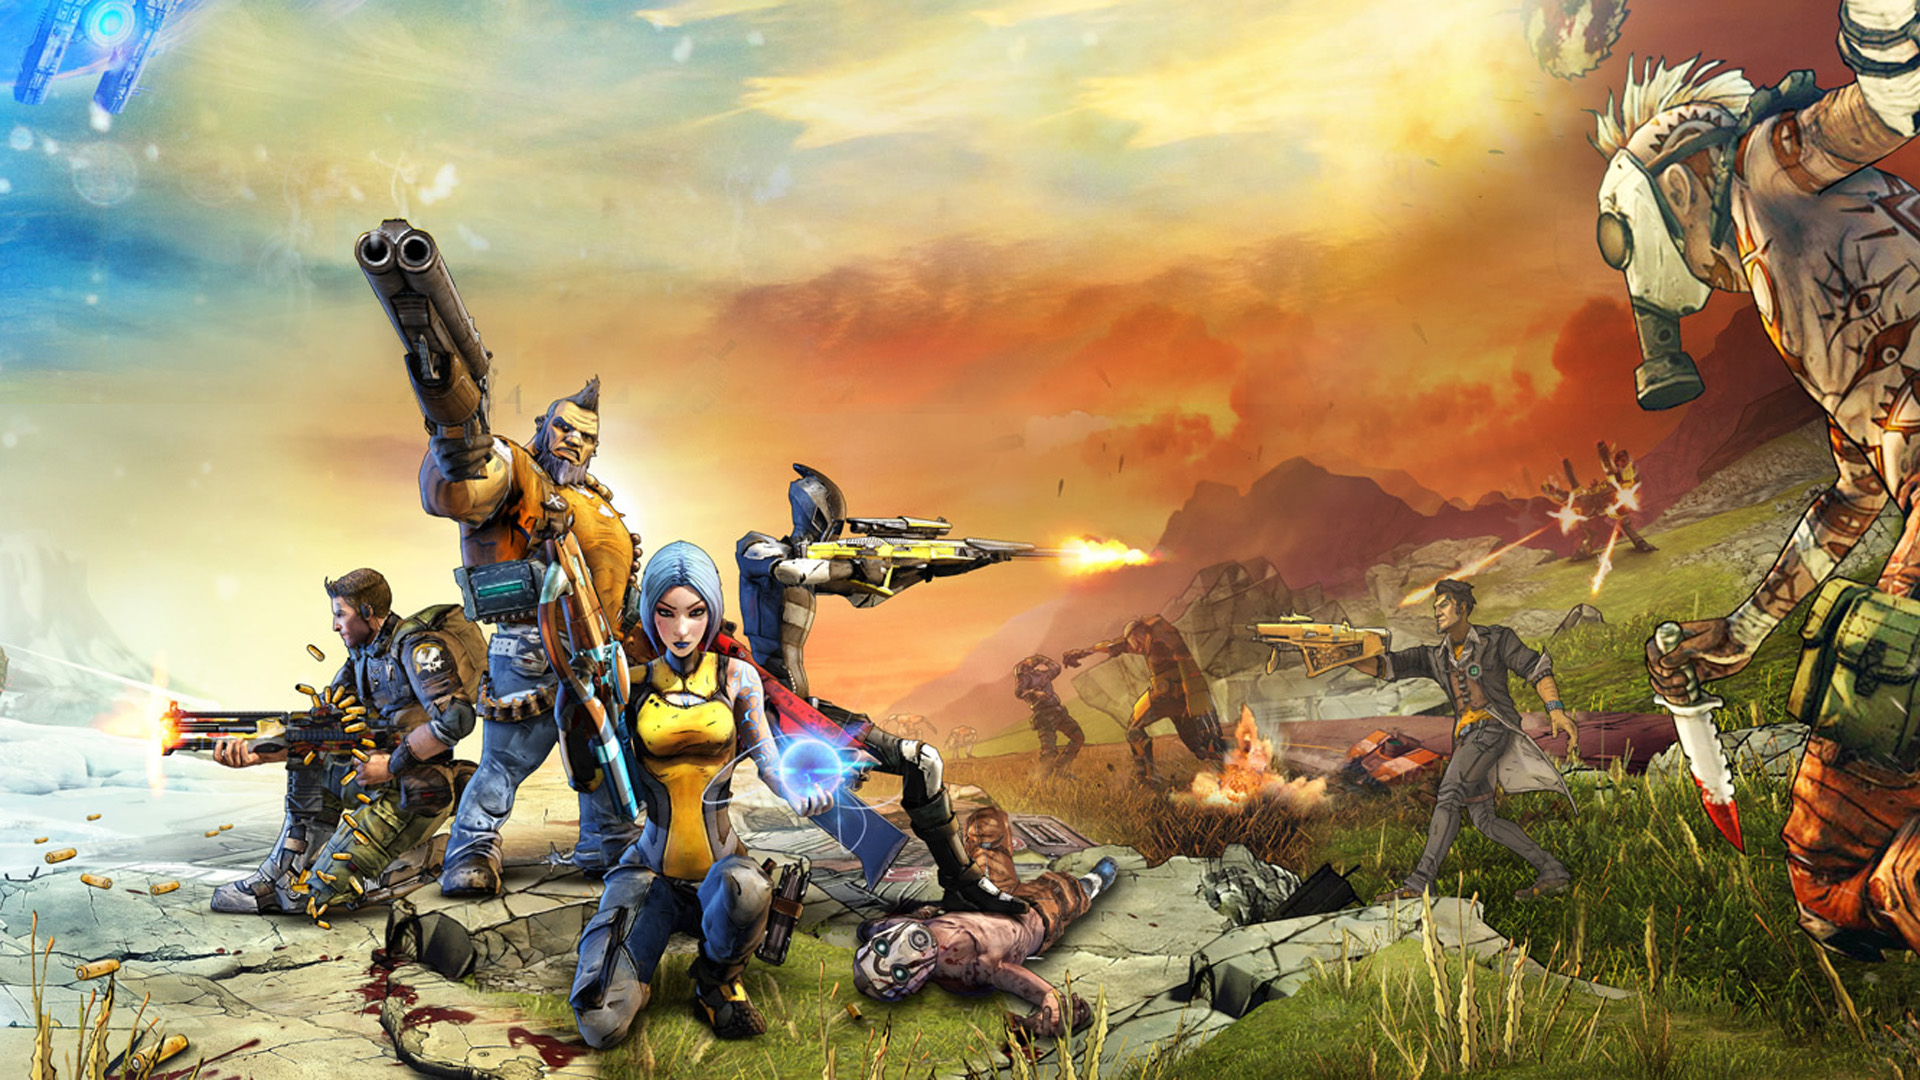 Borderlands 2 HD Wallpaper